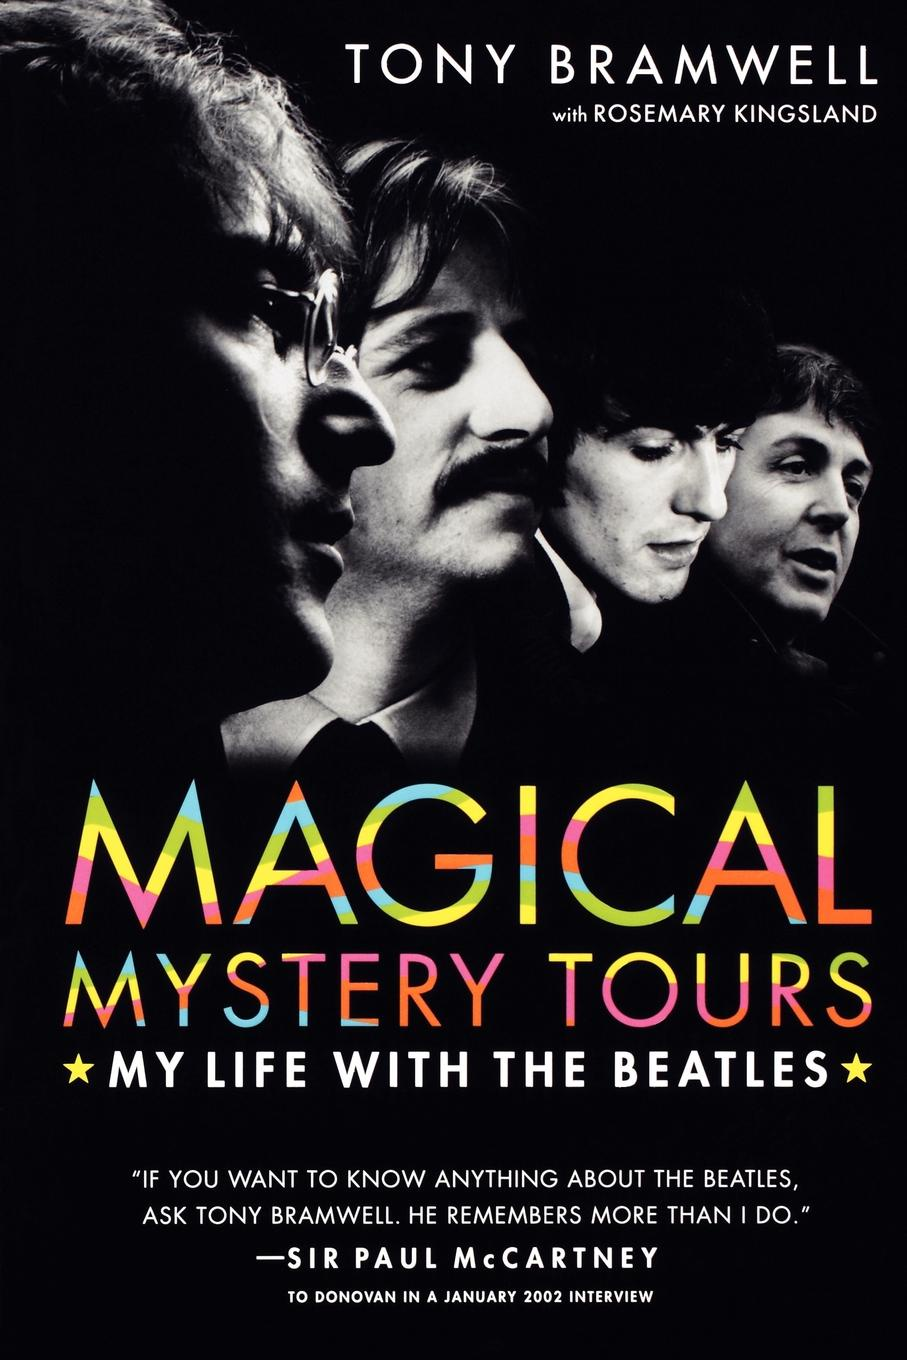 Tony Bramwell Magical Mystery Tours. My Life with the Beatles bénabar tours